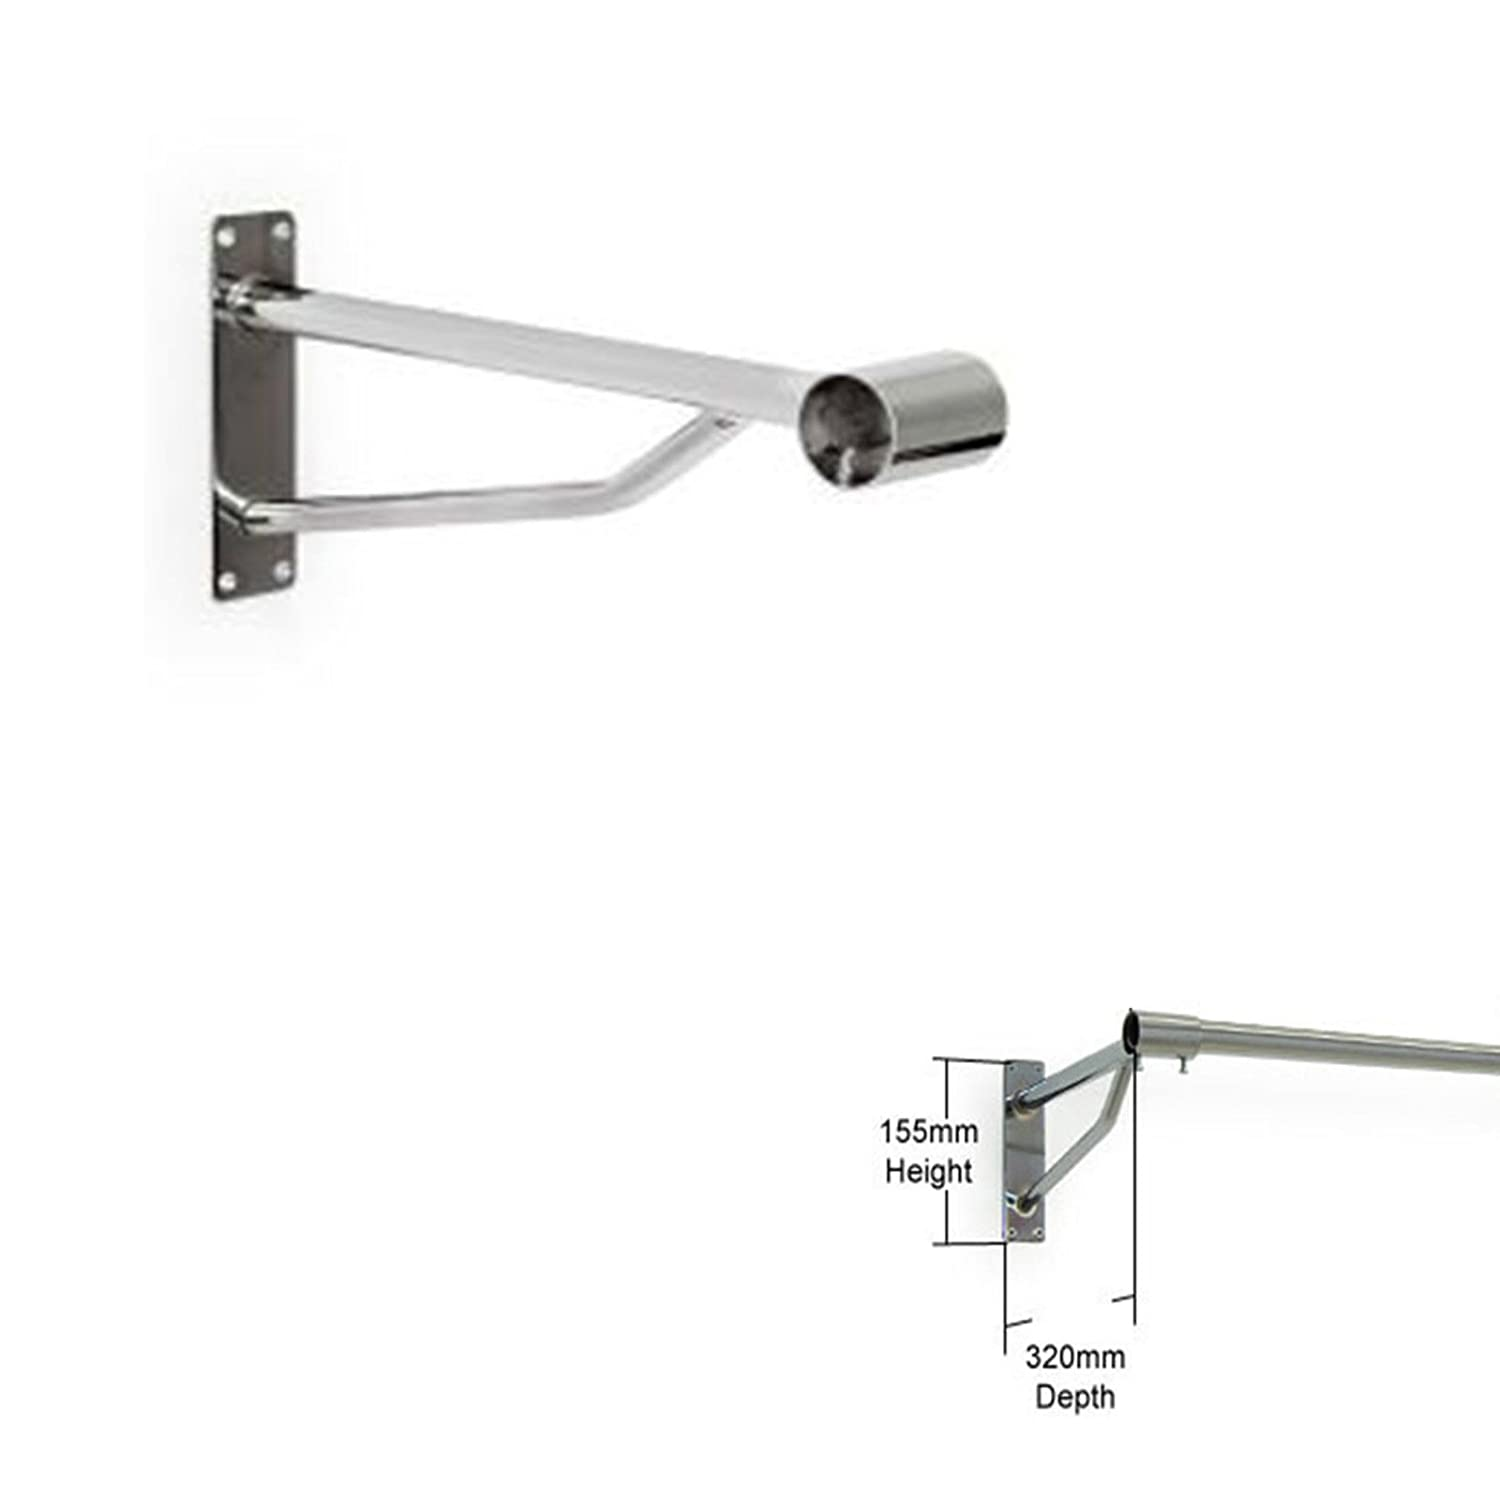 1, 32mm Complete Retail Solution Ltd WALL MOUNTED CLOTHES RAIL BRACKET SCREW FIX CHROME HANGING ARM FIT SIZE 25/&32 mm